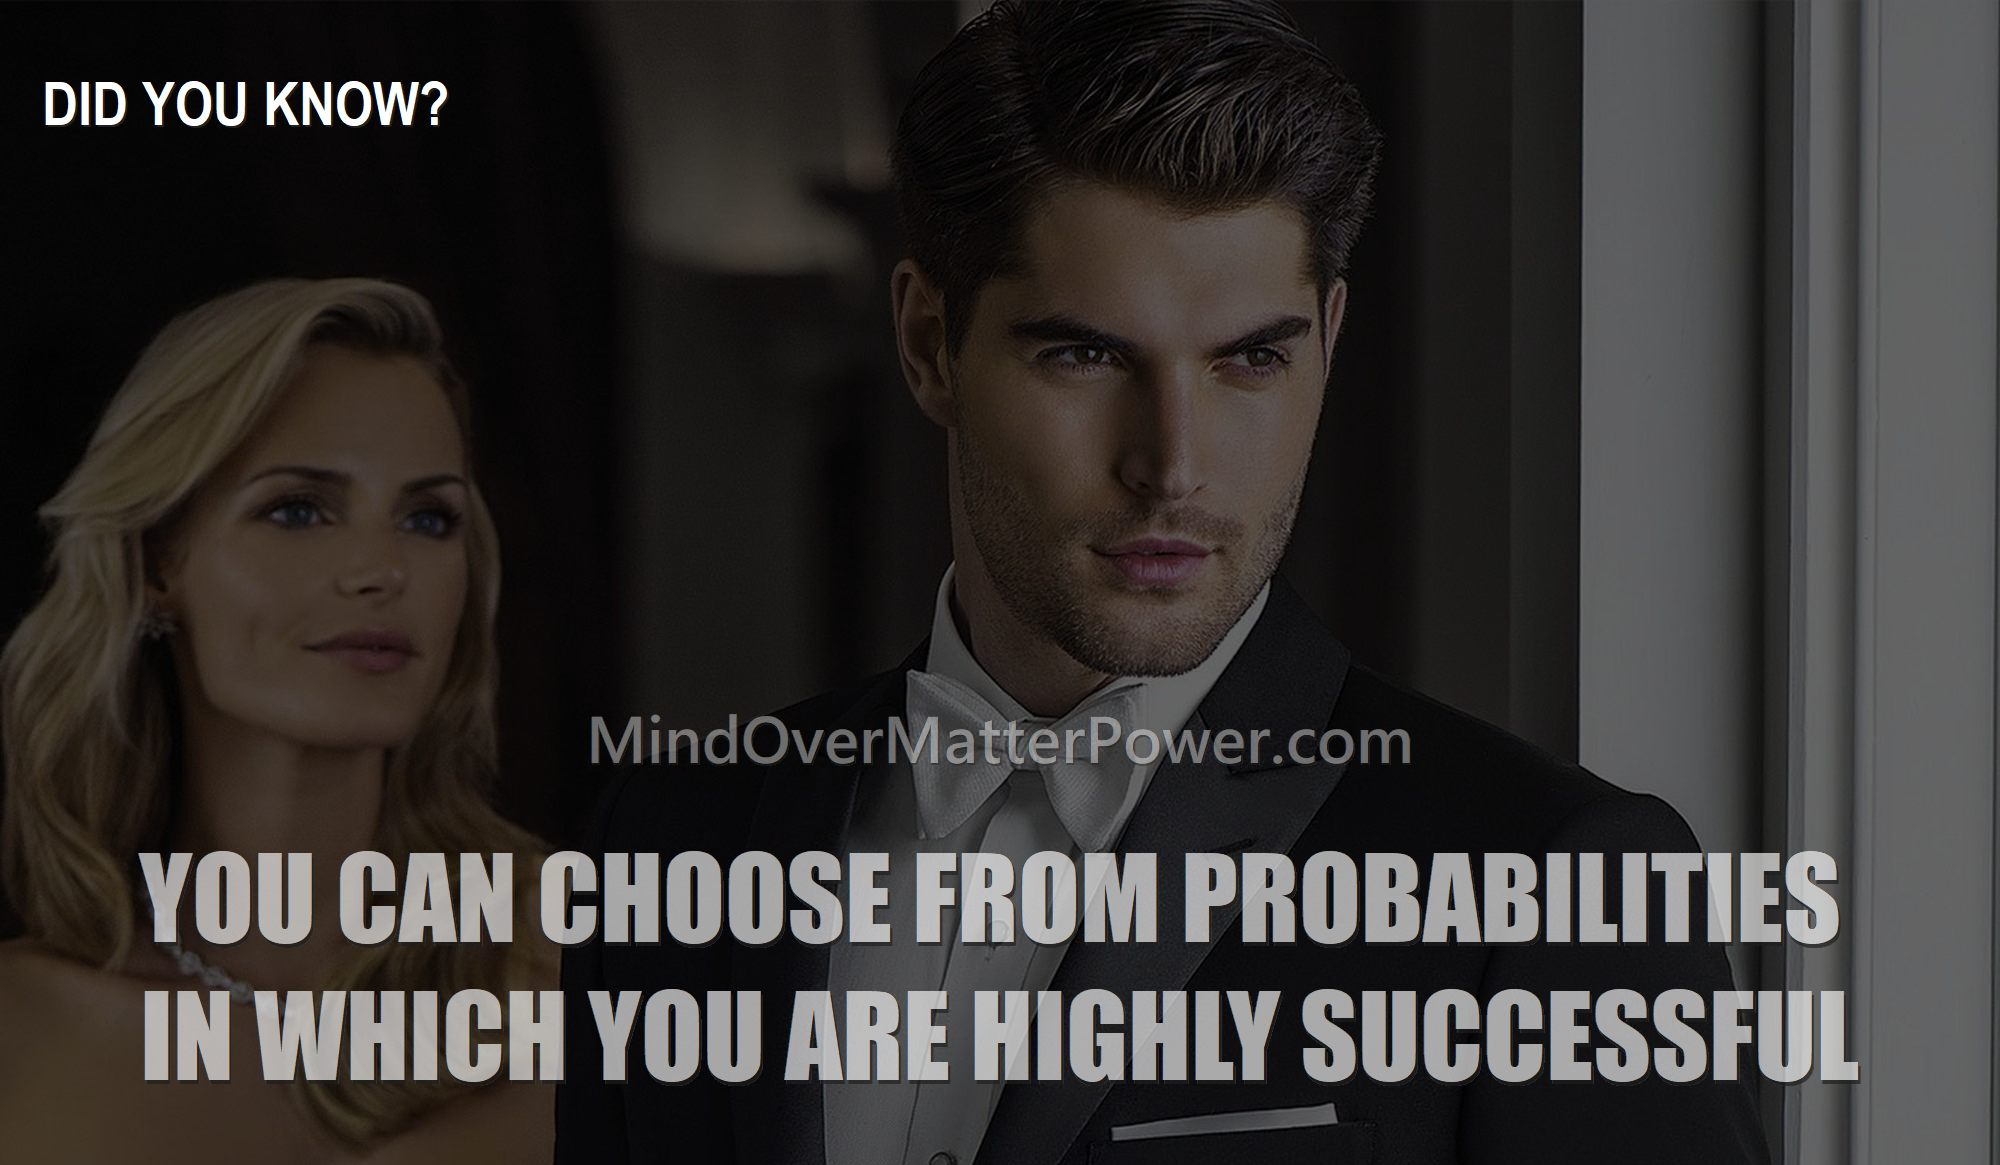 SUCCESSFUL PEOPLE DEPICT HOW mind-over-matter-power-manifesting-probabilities-how-to-manifest-probable-other-alternate-self-image-self-esteem-confidence-success